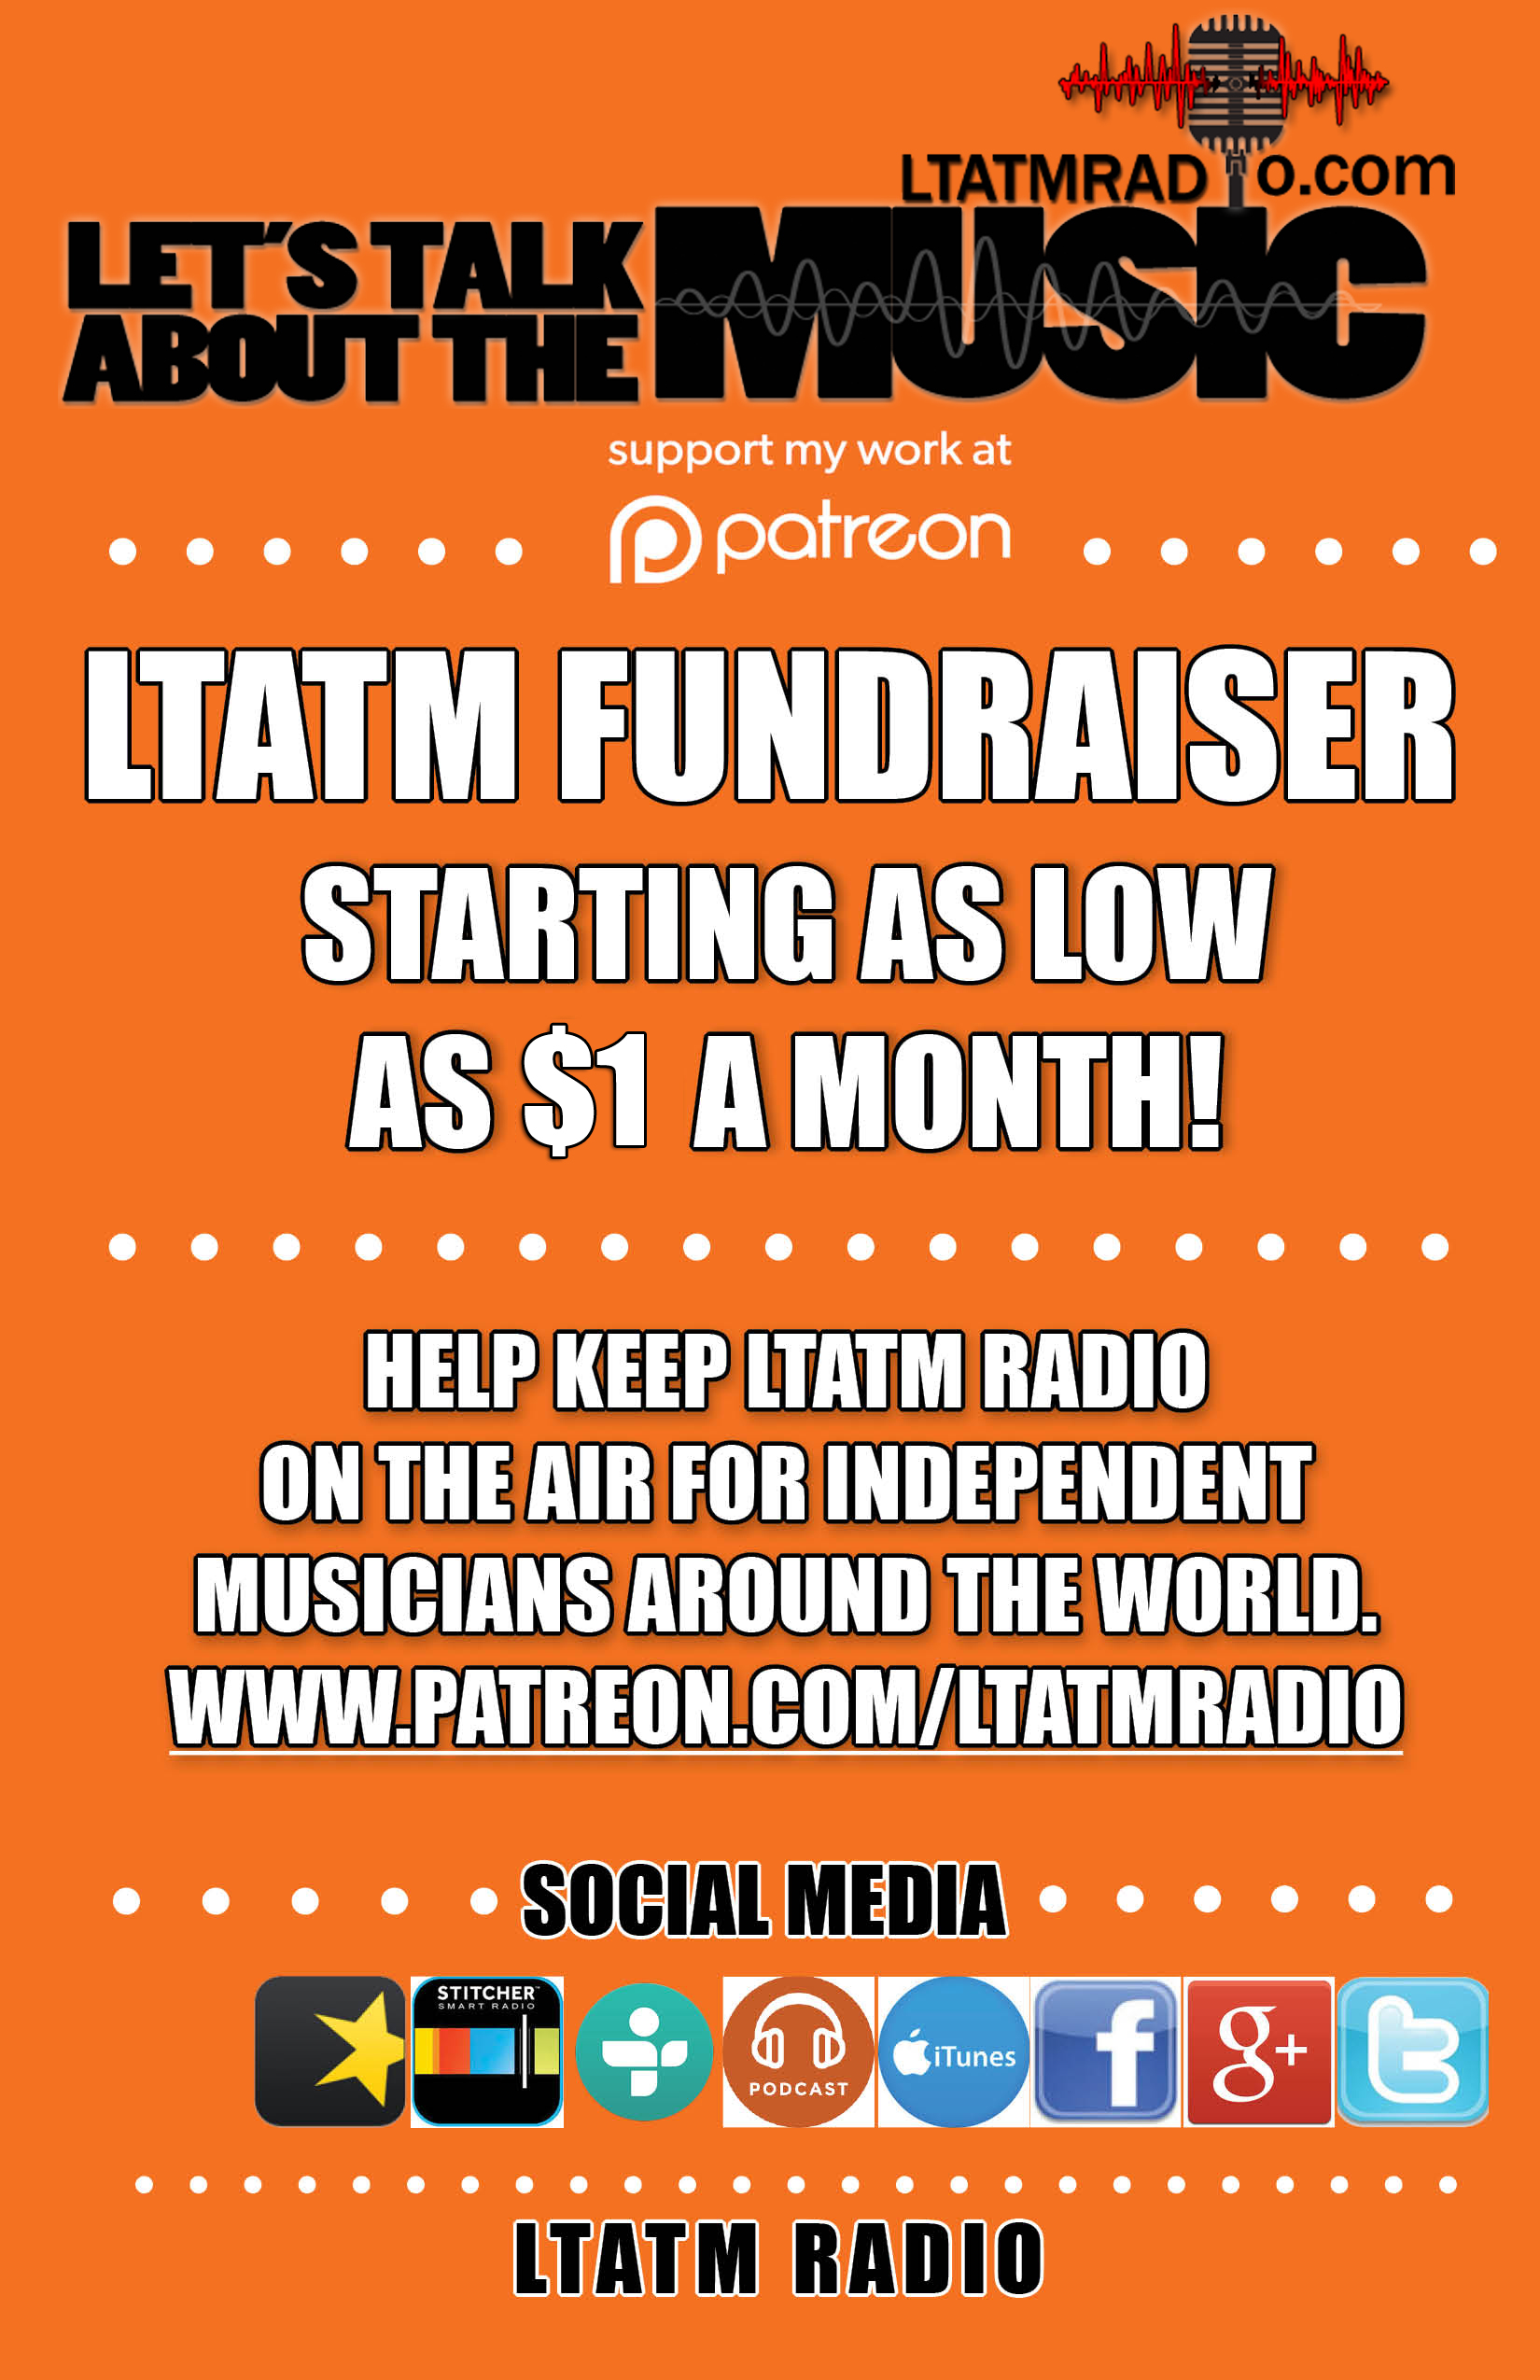 patreon.com/LTATMRADIO